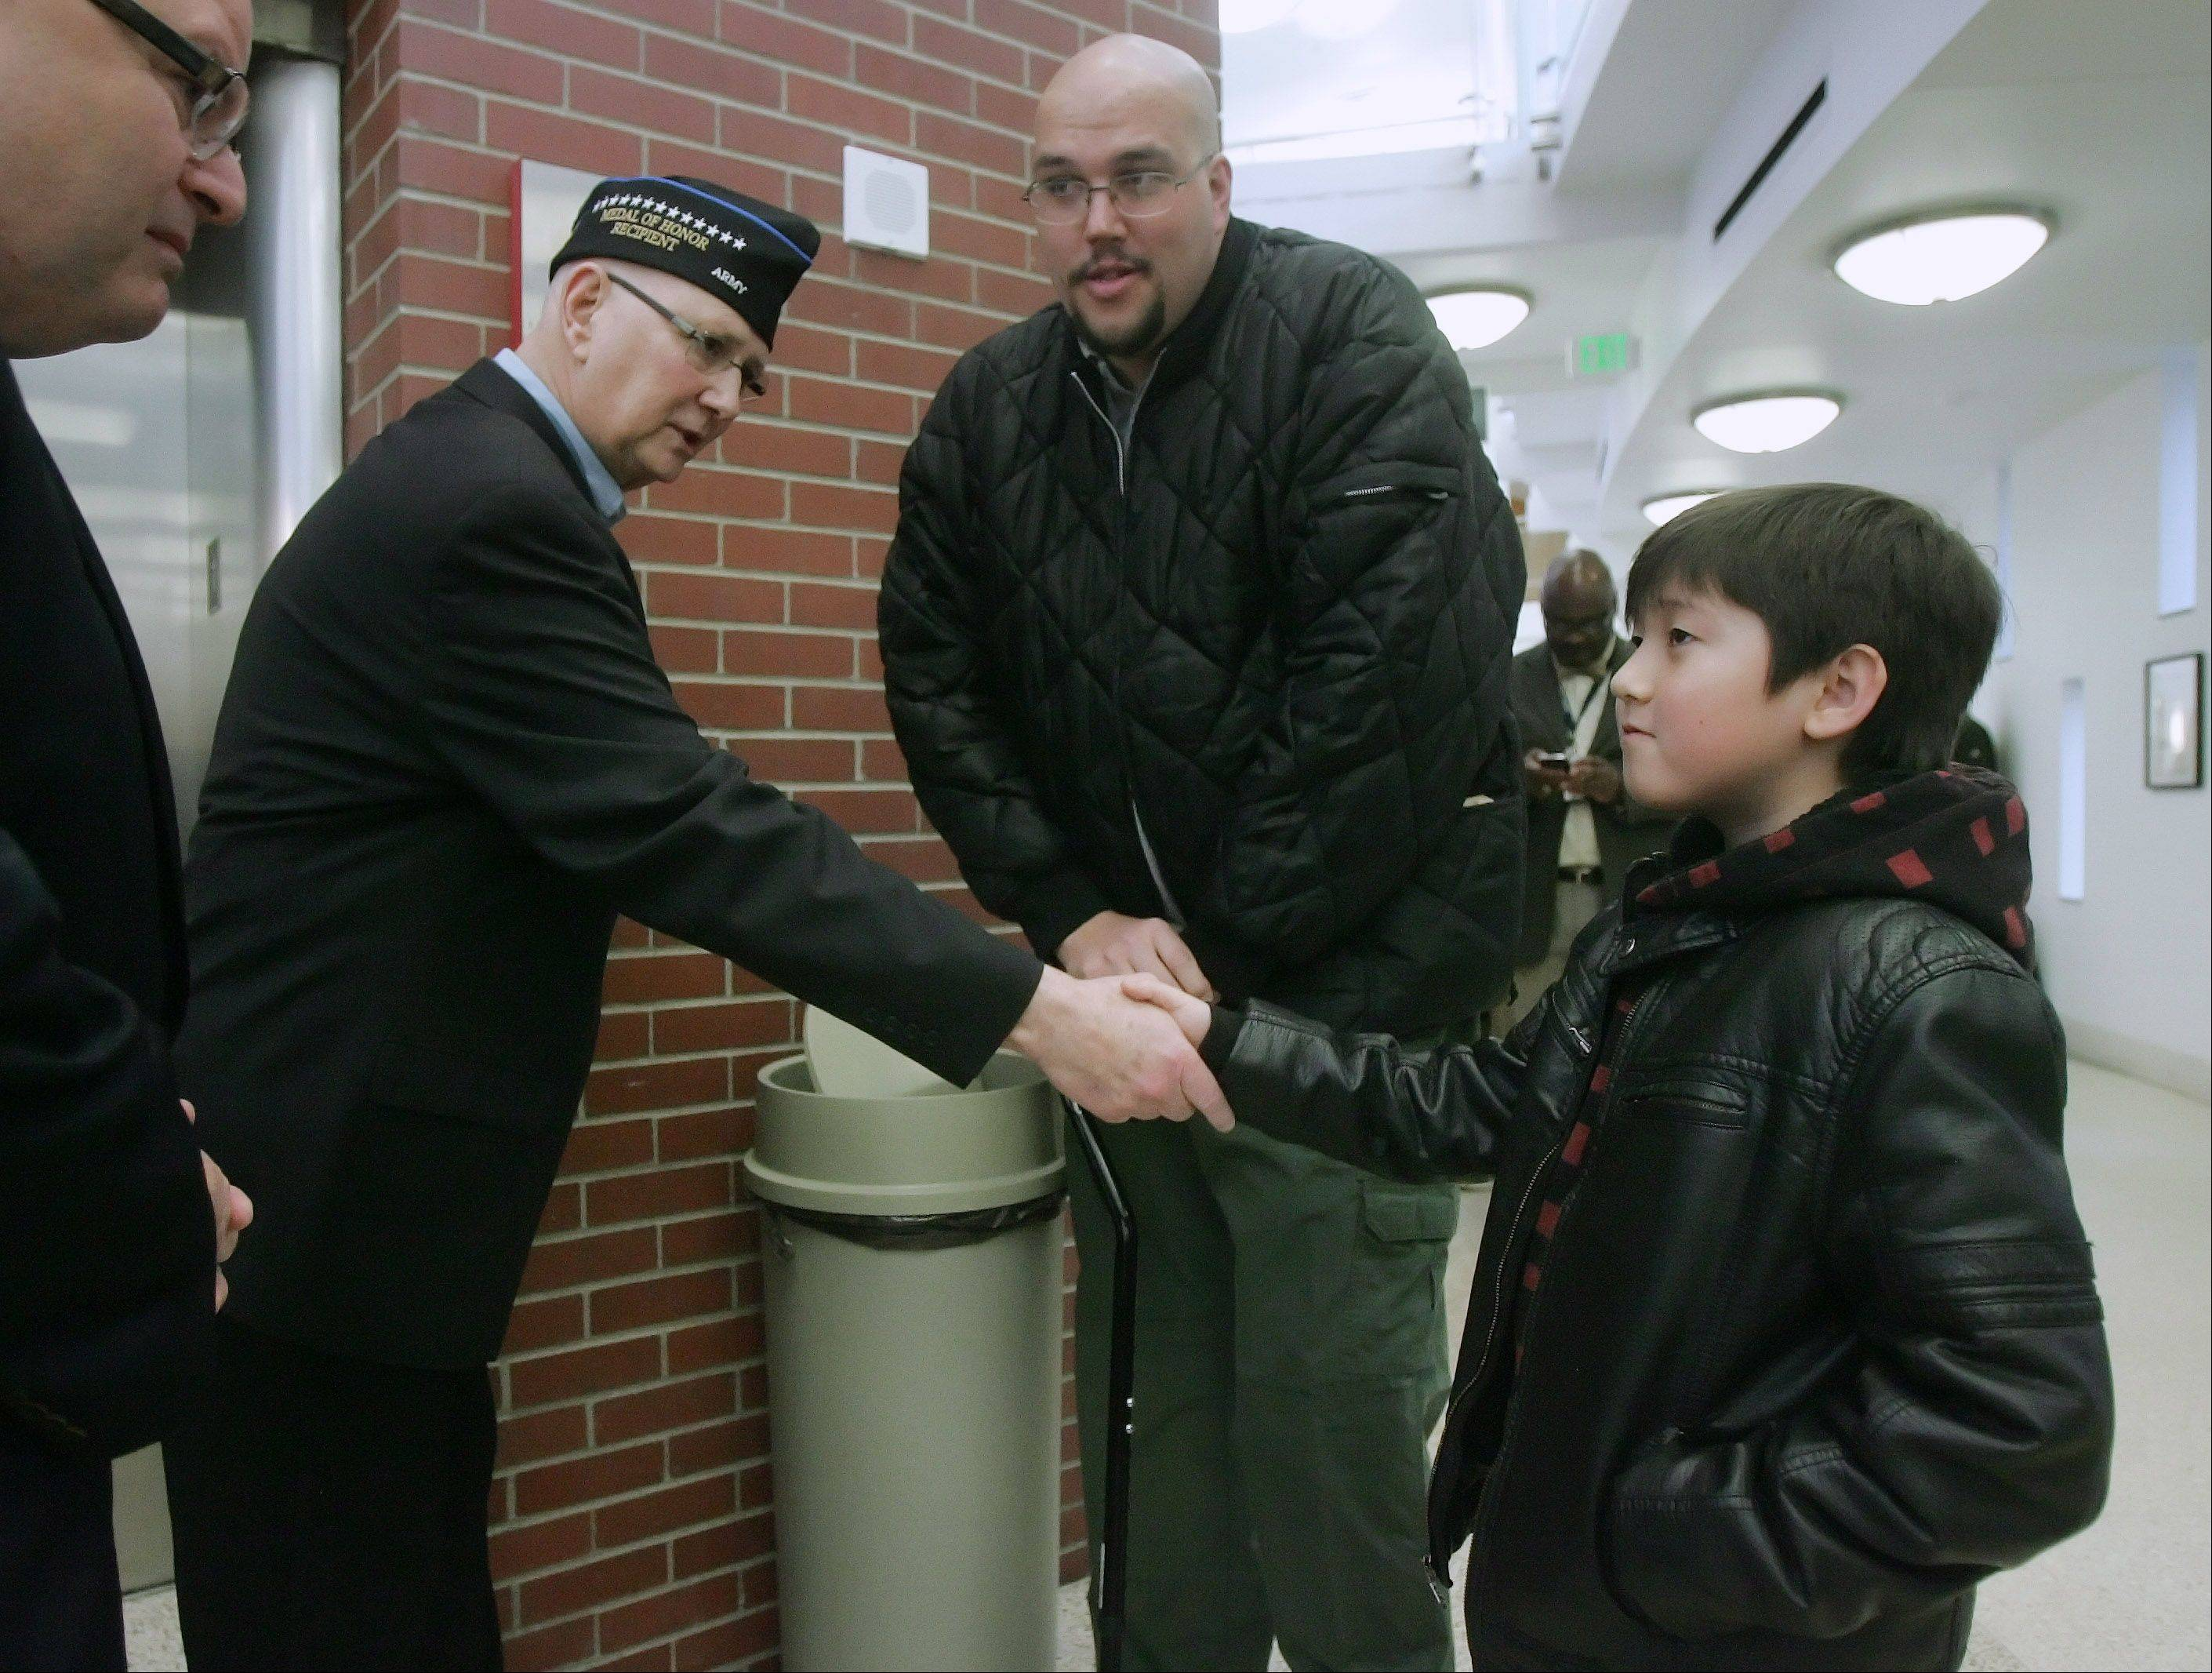 Medal of Honor recipient Allen Lynch of Gurnee shakes hands with 10-year-old Jinu Puclik of Glenview and his dad, Tim, at the Capt. James A. Lovell Federal Health Care Center. Lynch was recognized during a ceremony Monday for National Medal of Honor Day.